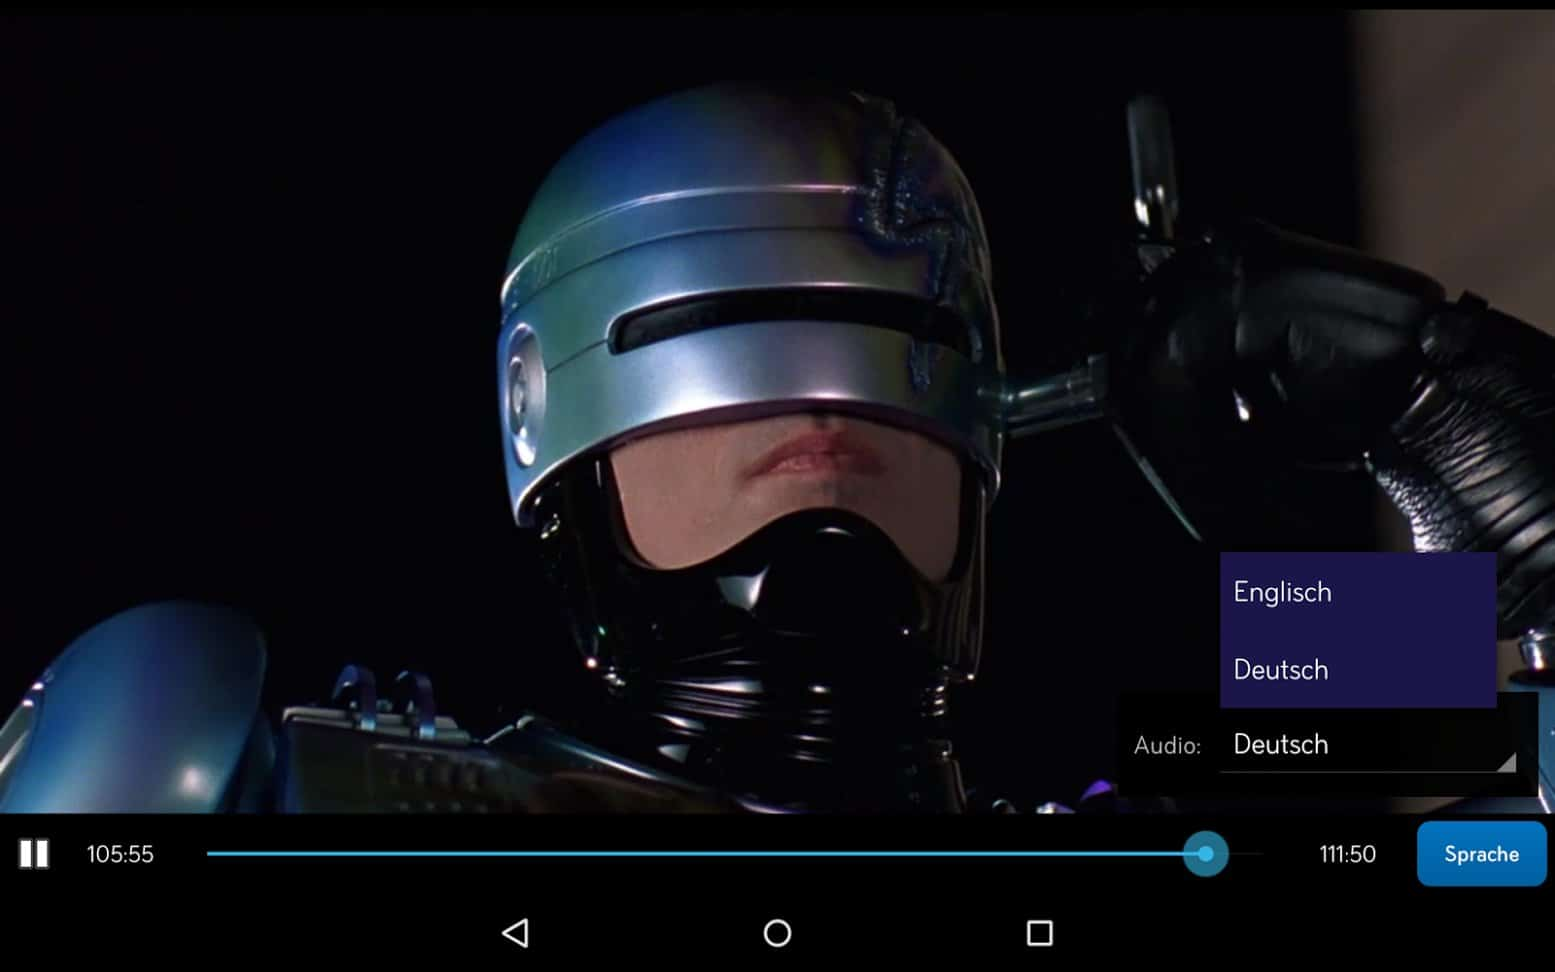 Sprache wählen bei RoboCop 2 in Sky Go App | Screenshot: Redaktion